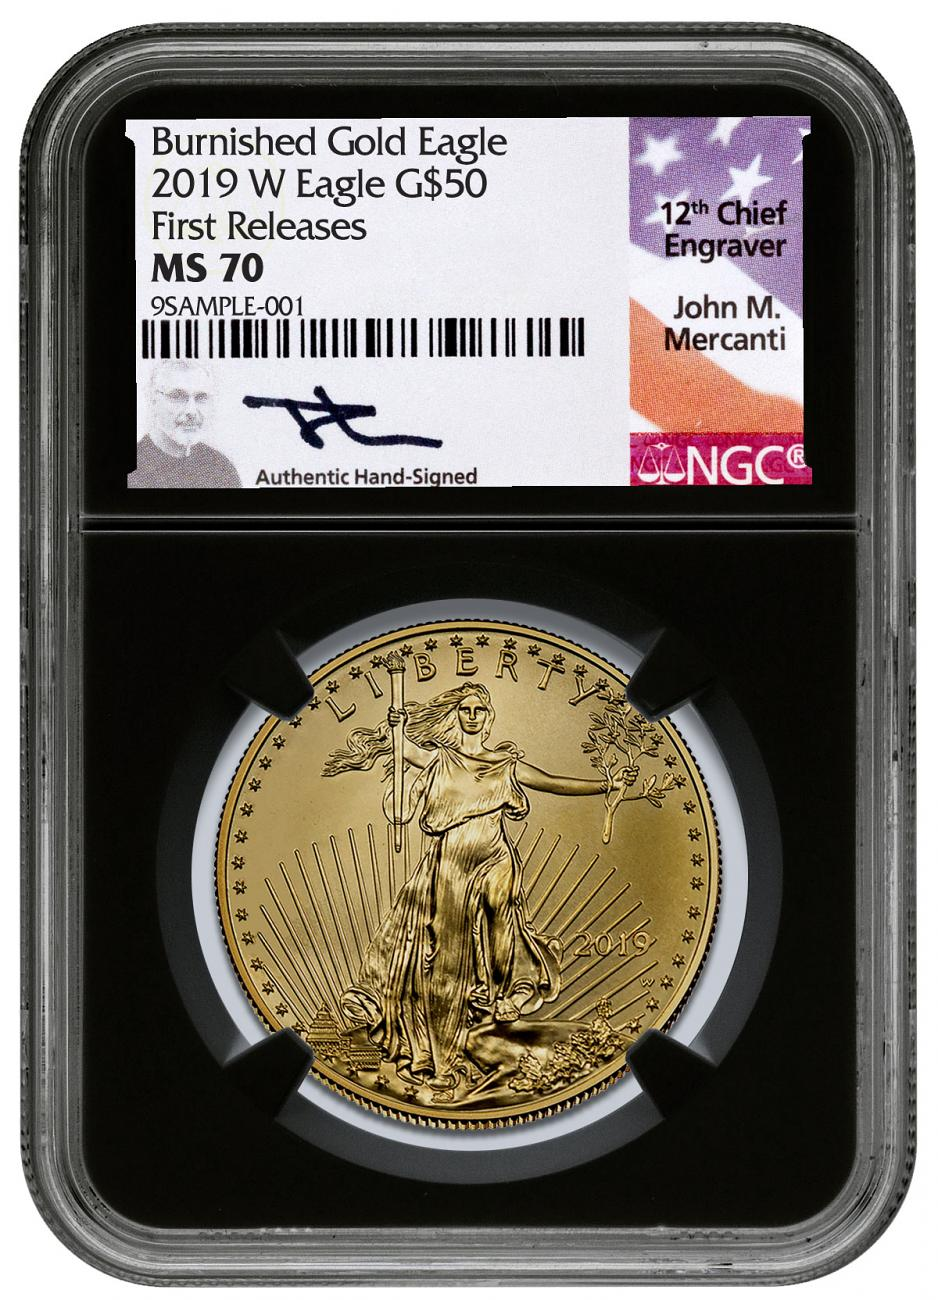 2019-W 1 oz Burnished Gold American Eagle $50 NGC MS70 FR Black Core Holder Mercanti Signed Label